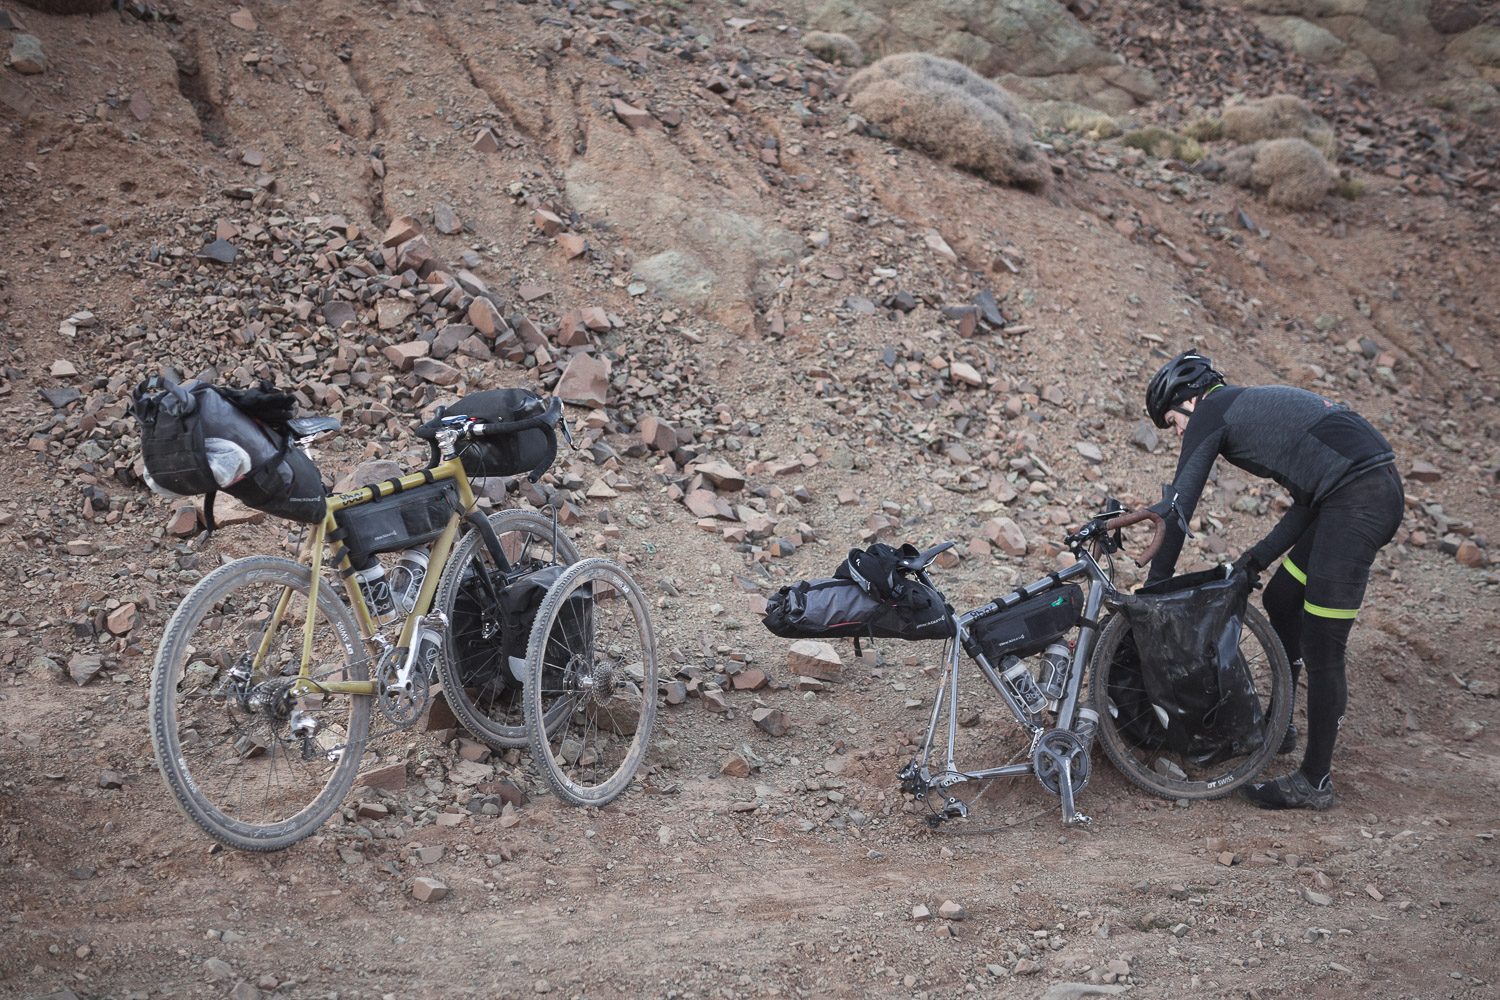 8bar bikes adventures morocco gravel 20151213 0201 bearbeitet 2 - 8bar Adventures - Morocco - High Atlas - Part 2/2